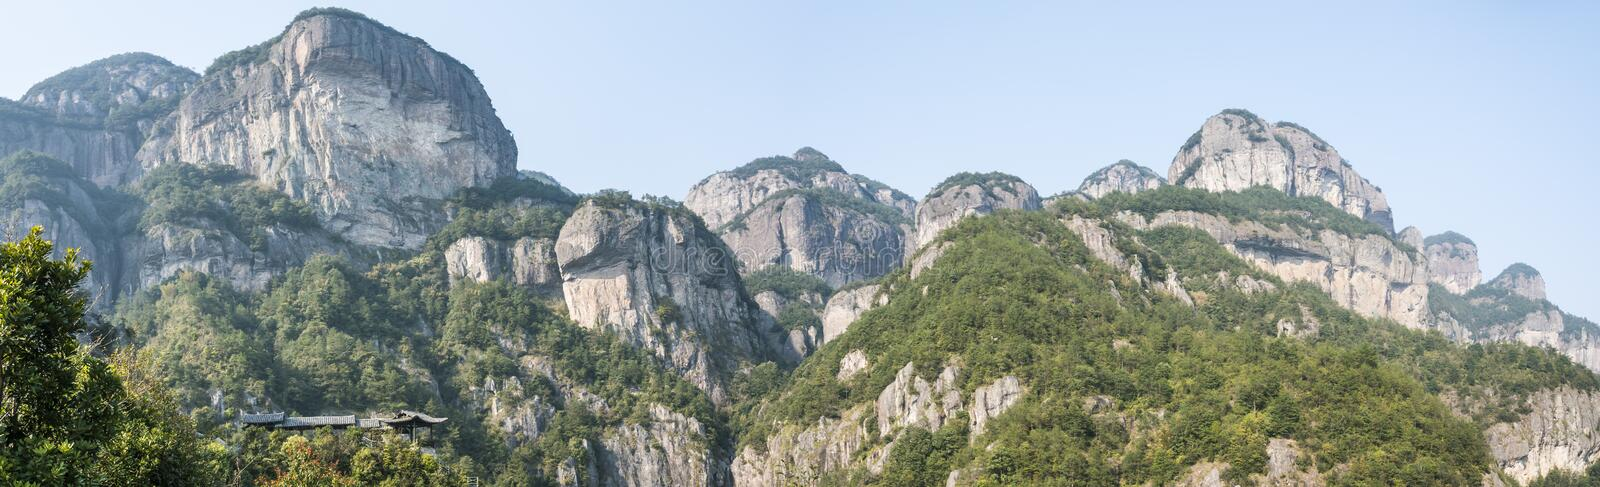 The Warehouse under The Cliff (Yaxiaku) Scenic stock photography